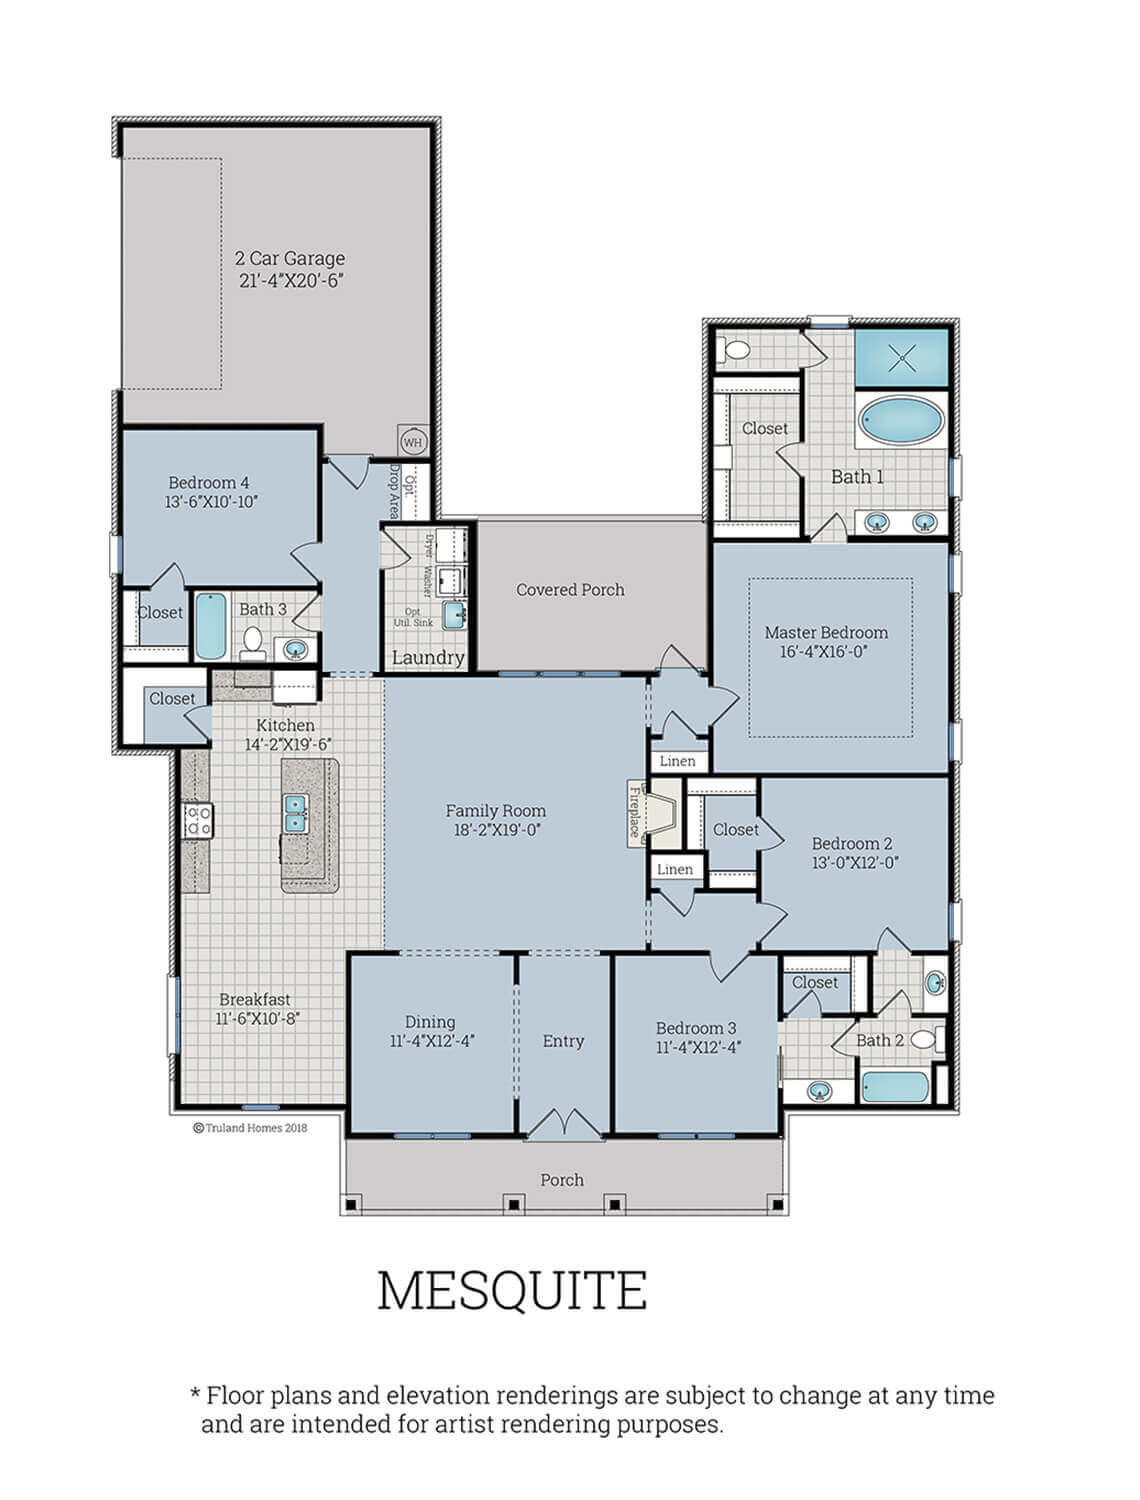 Mesquite Plan Homes By Truland Homes For Sale